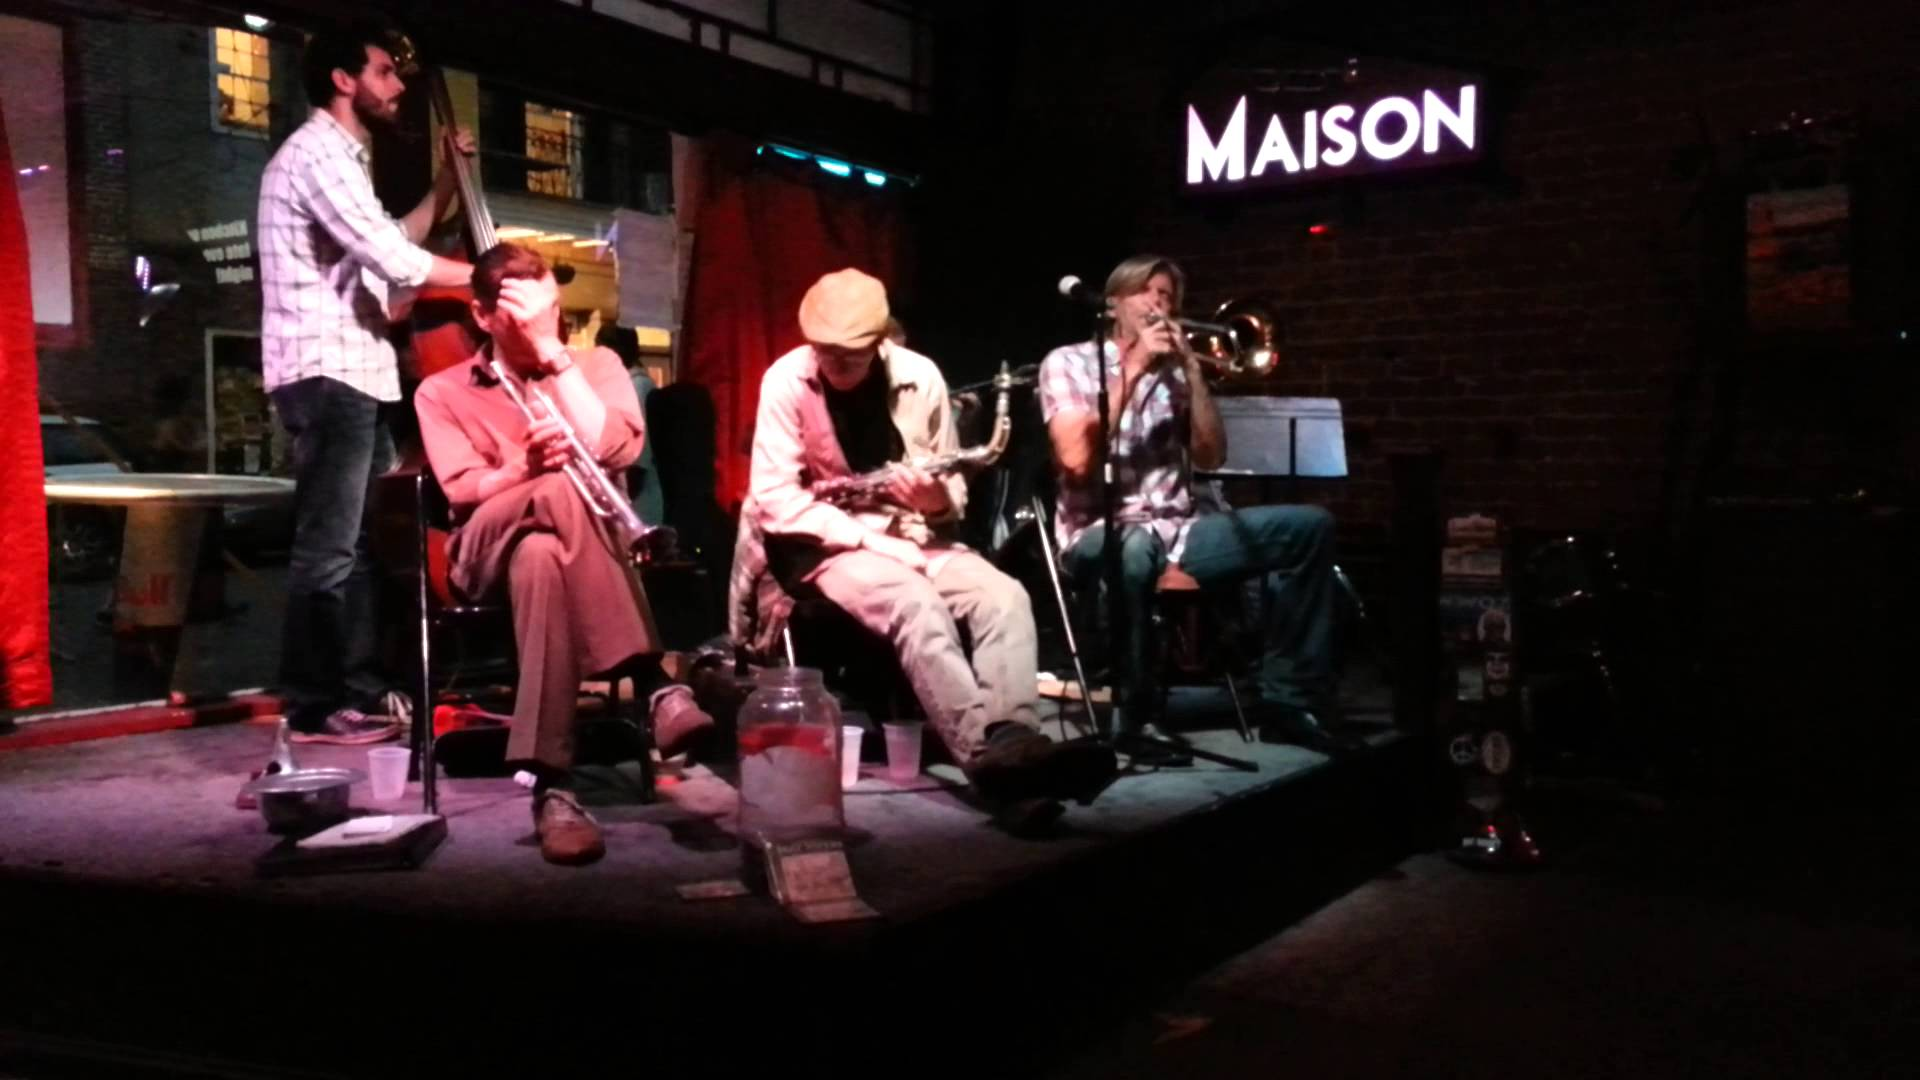 The New Orleans Jazz Vipers Wednesdays at The Maison in New Orleans